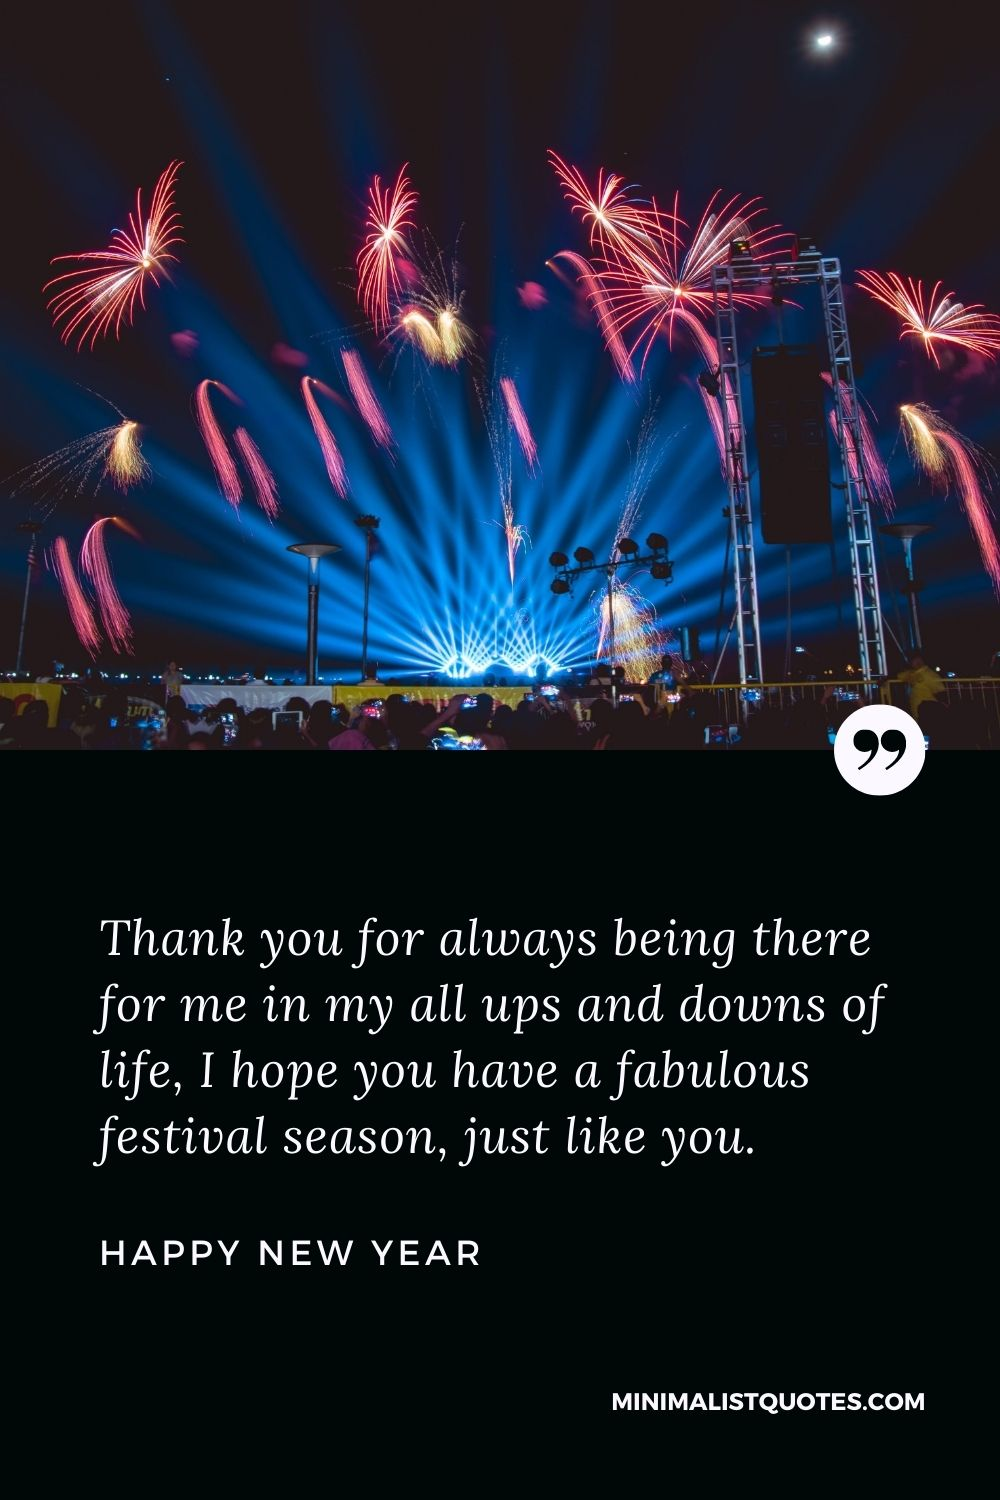 New Year Wish - Thank you for always being there for me in my all ups and downs of life, I hope you have a fabulous festival season, just like you.